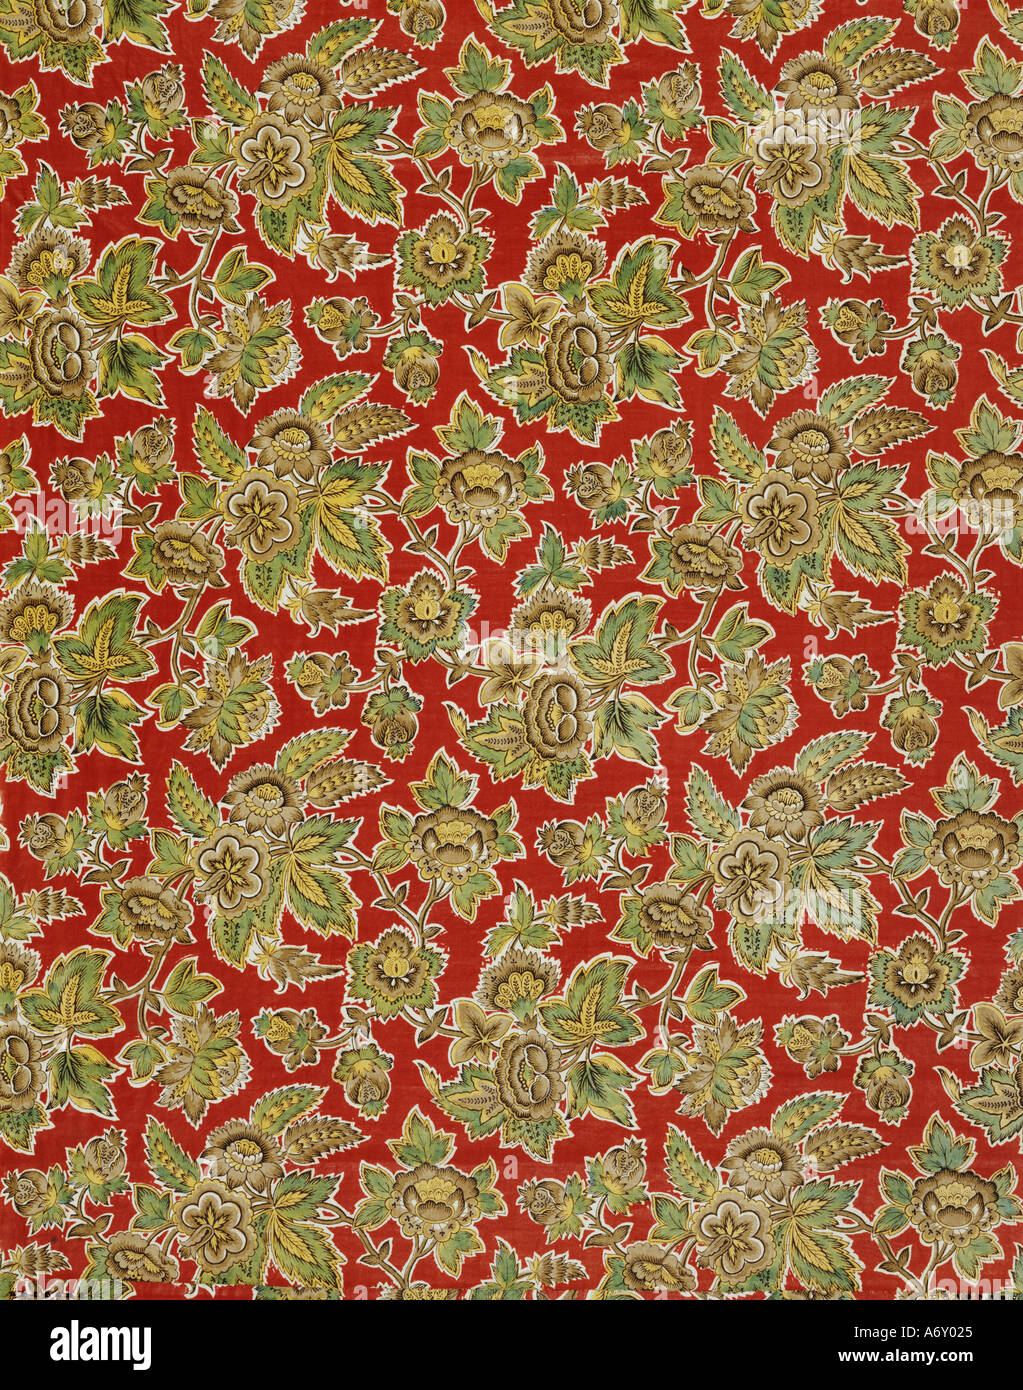 Floral pattern furnishing fabric by Pincott. England, 1803. - Stock Image